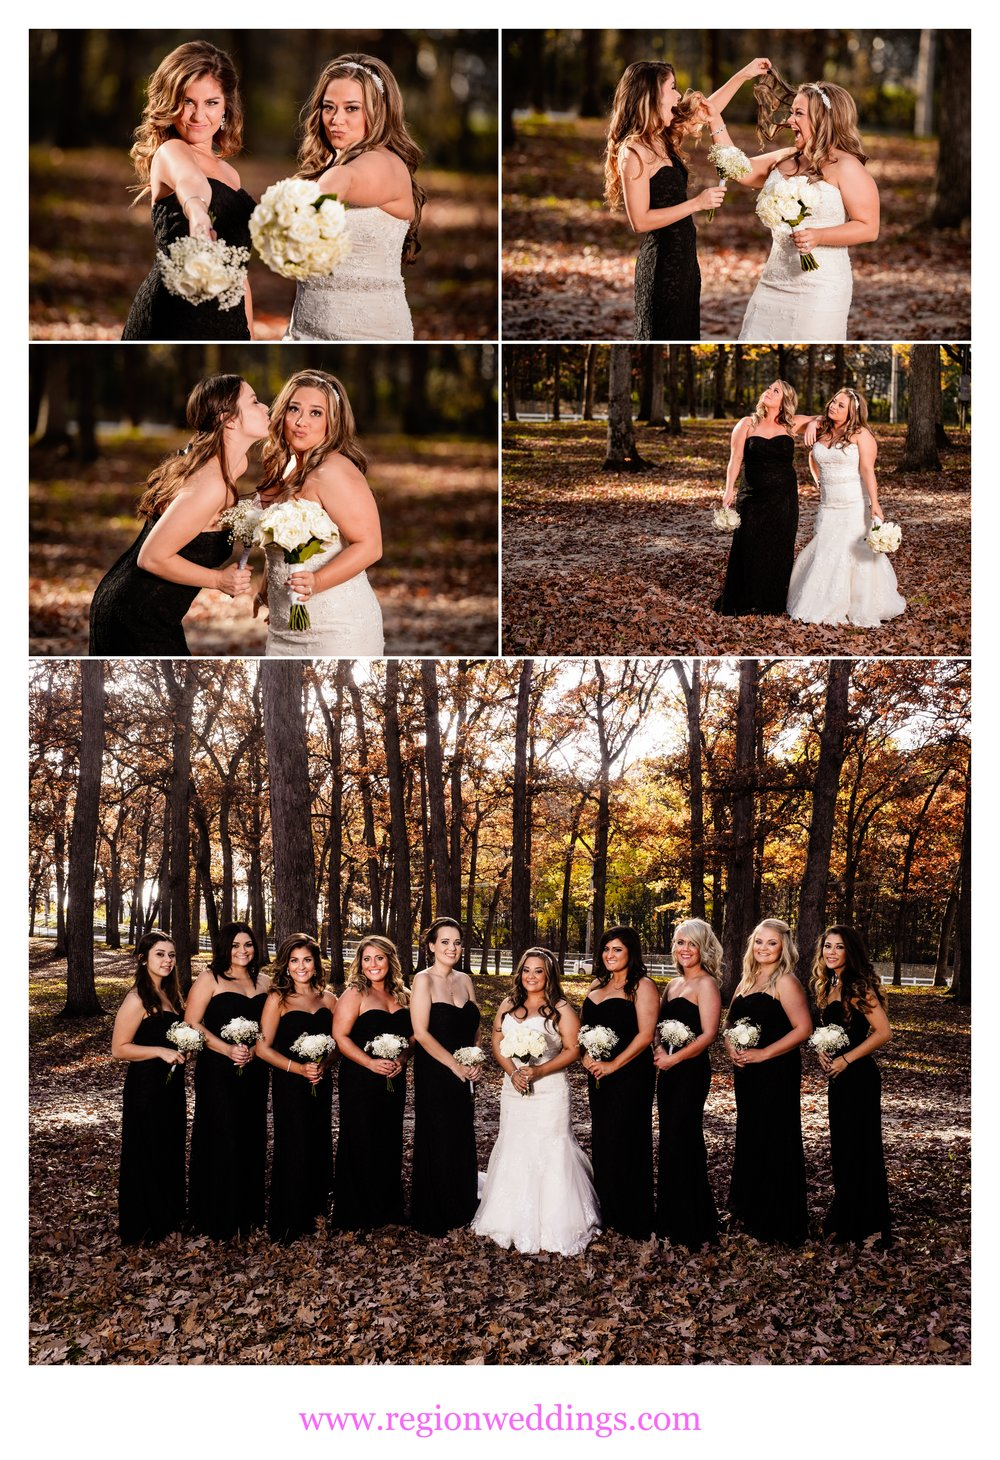 Bridesmaids photos at Lake County Fairgrounds in Crown Point, Indiana.